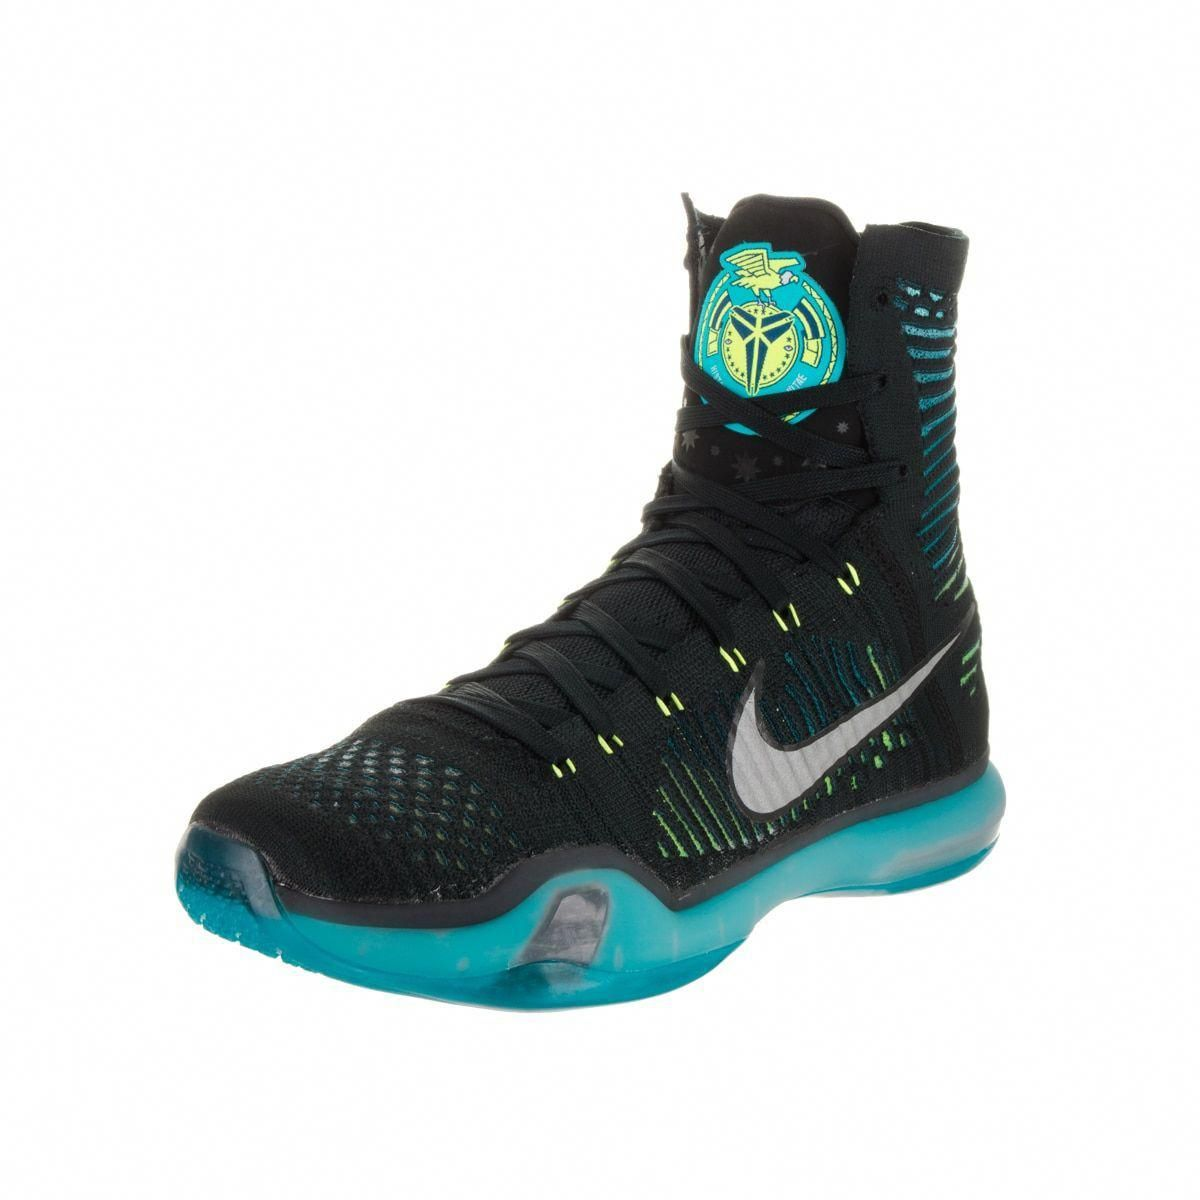 purchase cheap 53e09 6a3a7 Nike Men s Kobe X Elite and Blue High-top Basketball Shoes  basketballonline